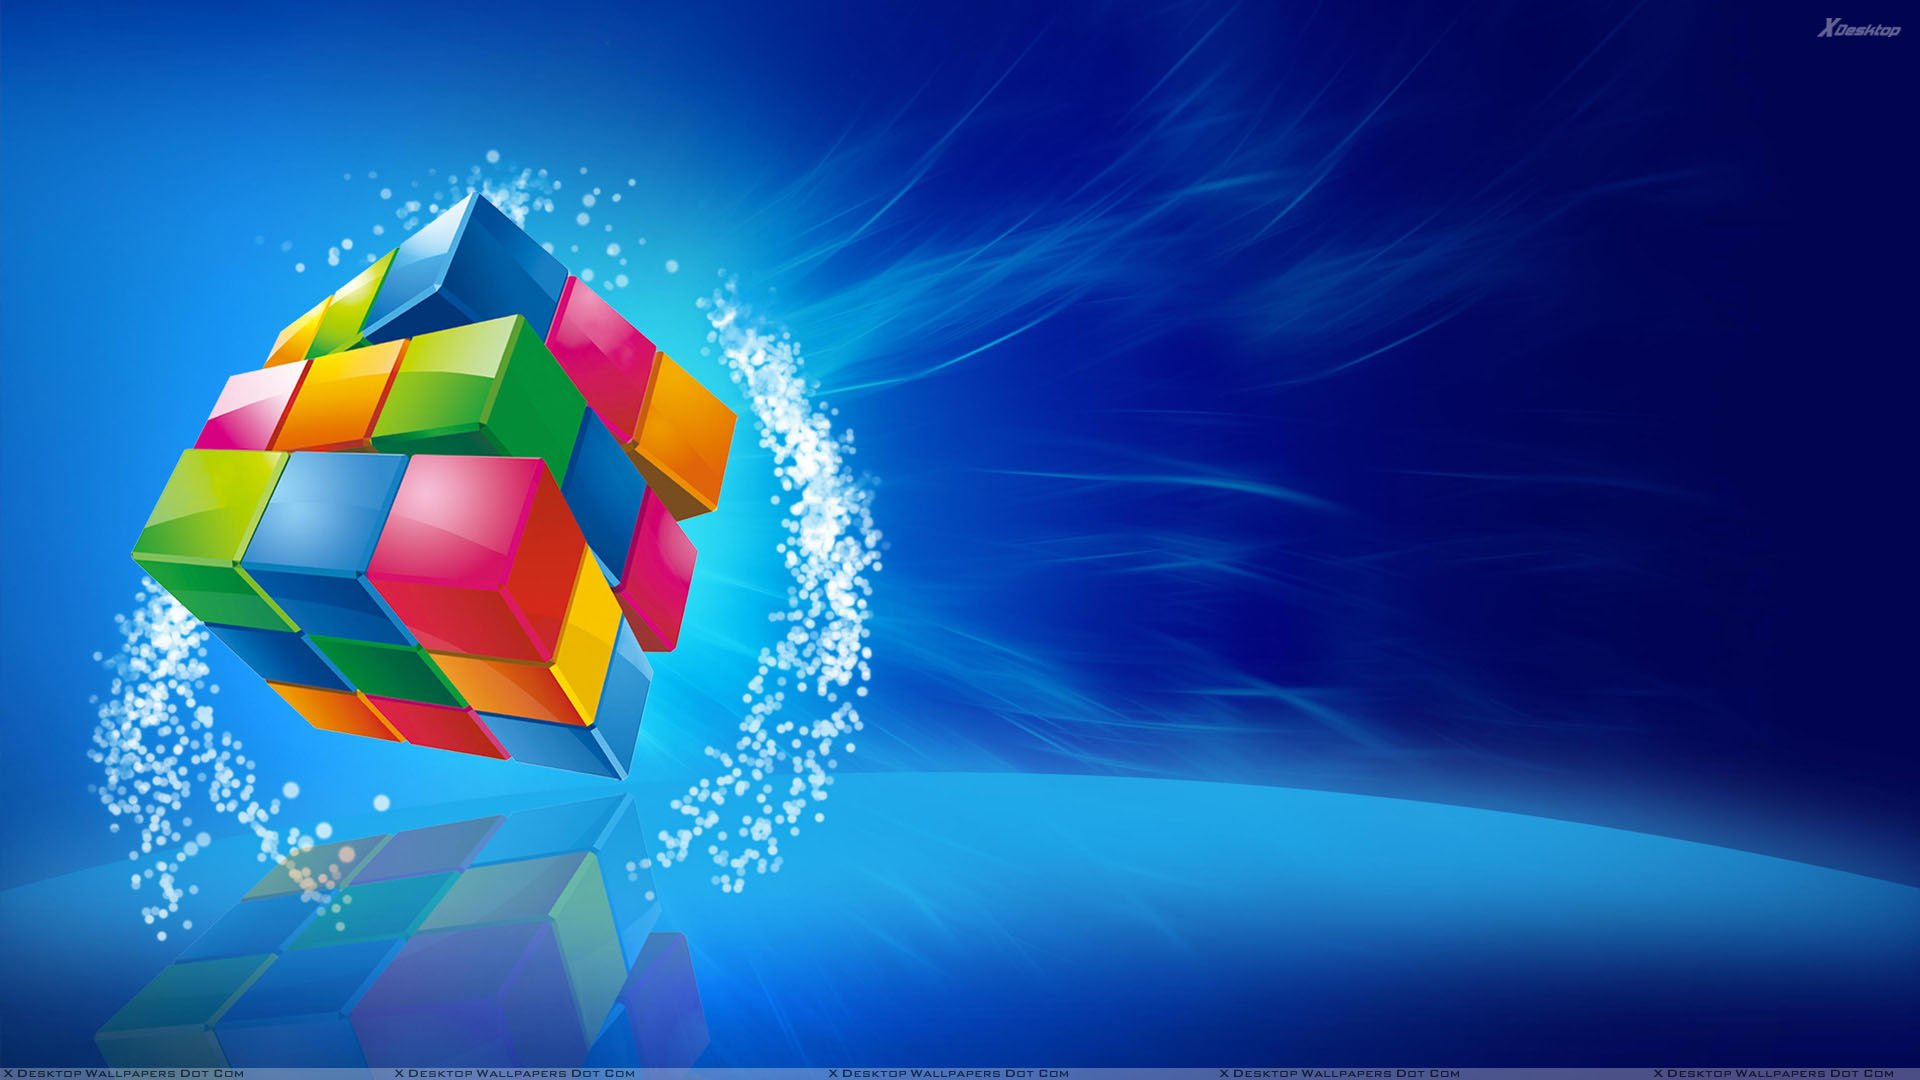 Color Cube On Blue Background Wallpaper 1920x1080